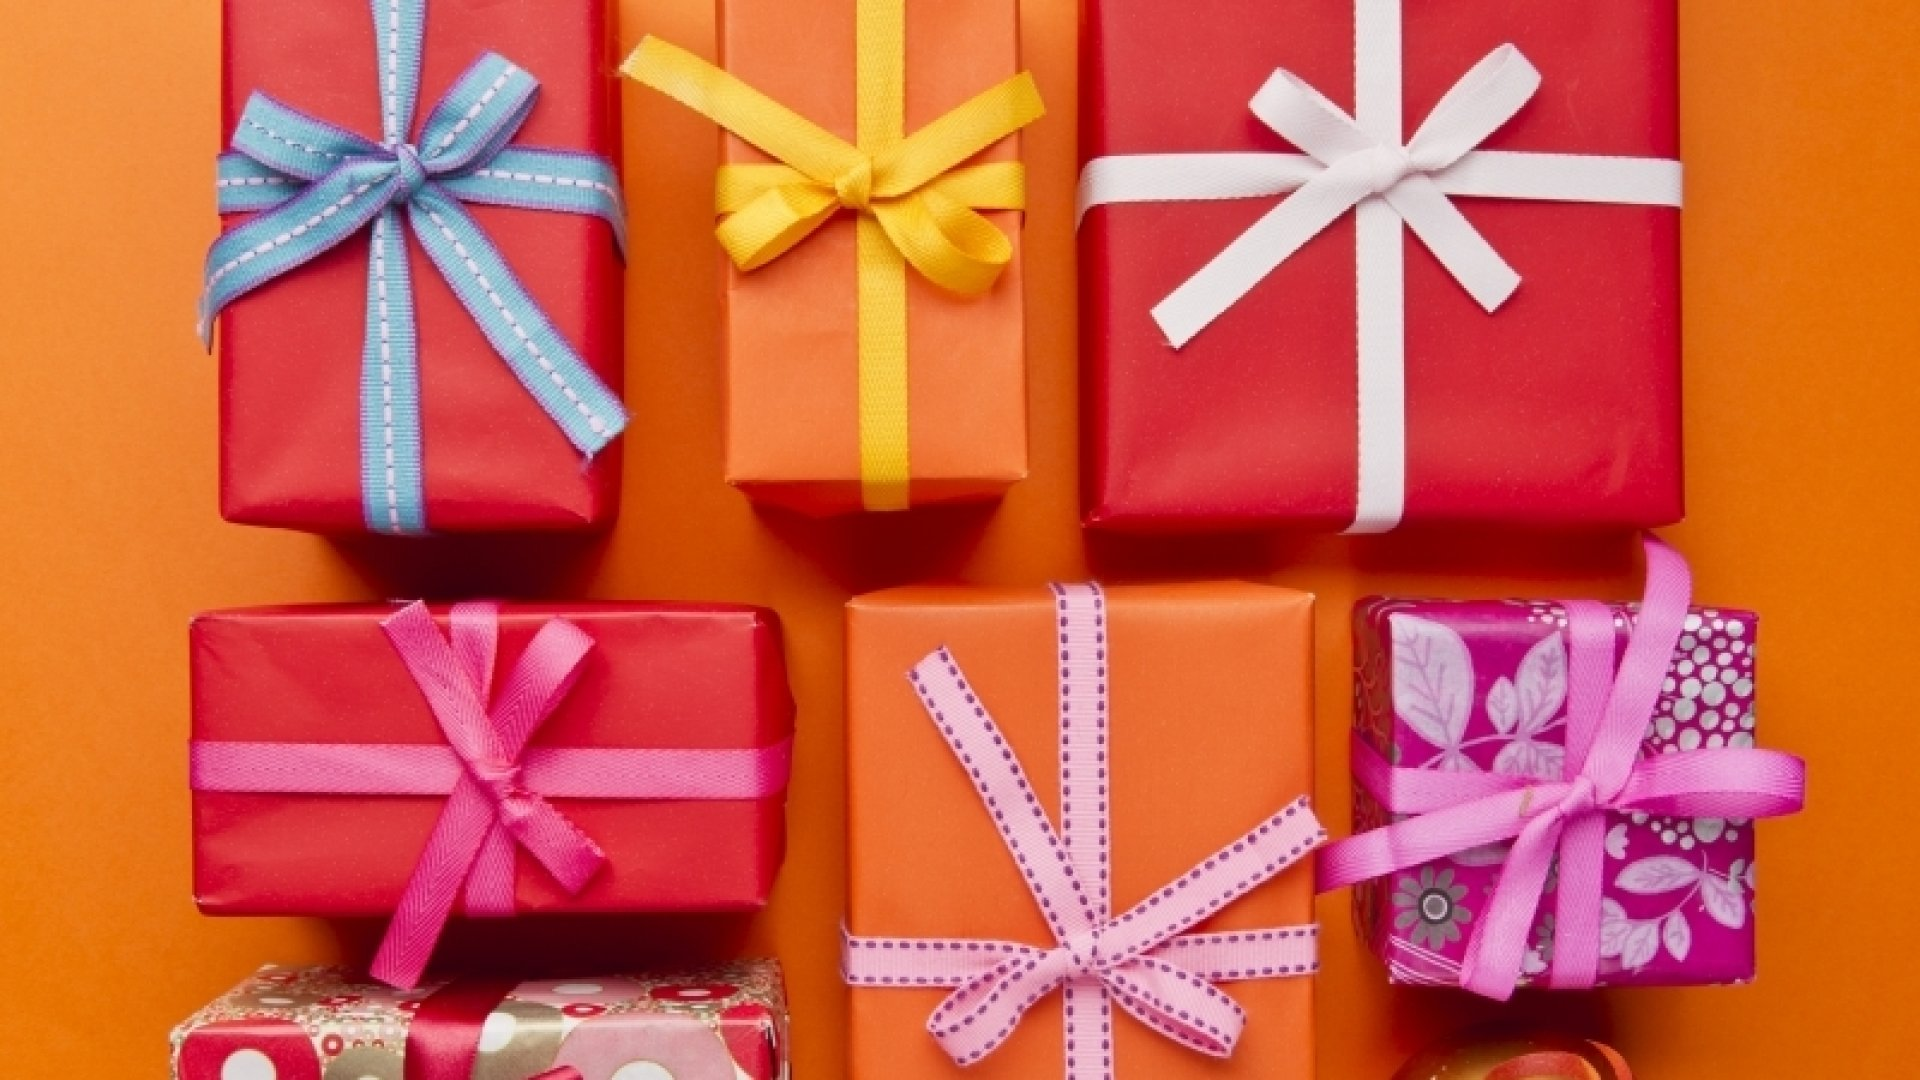 What Are the 9 Best Types of Gifts to Give Your Customers?